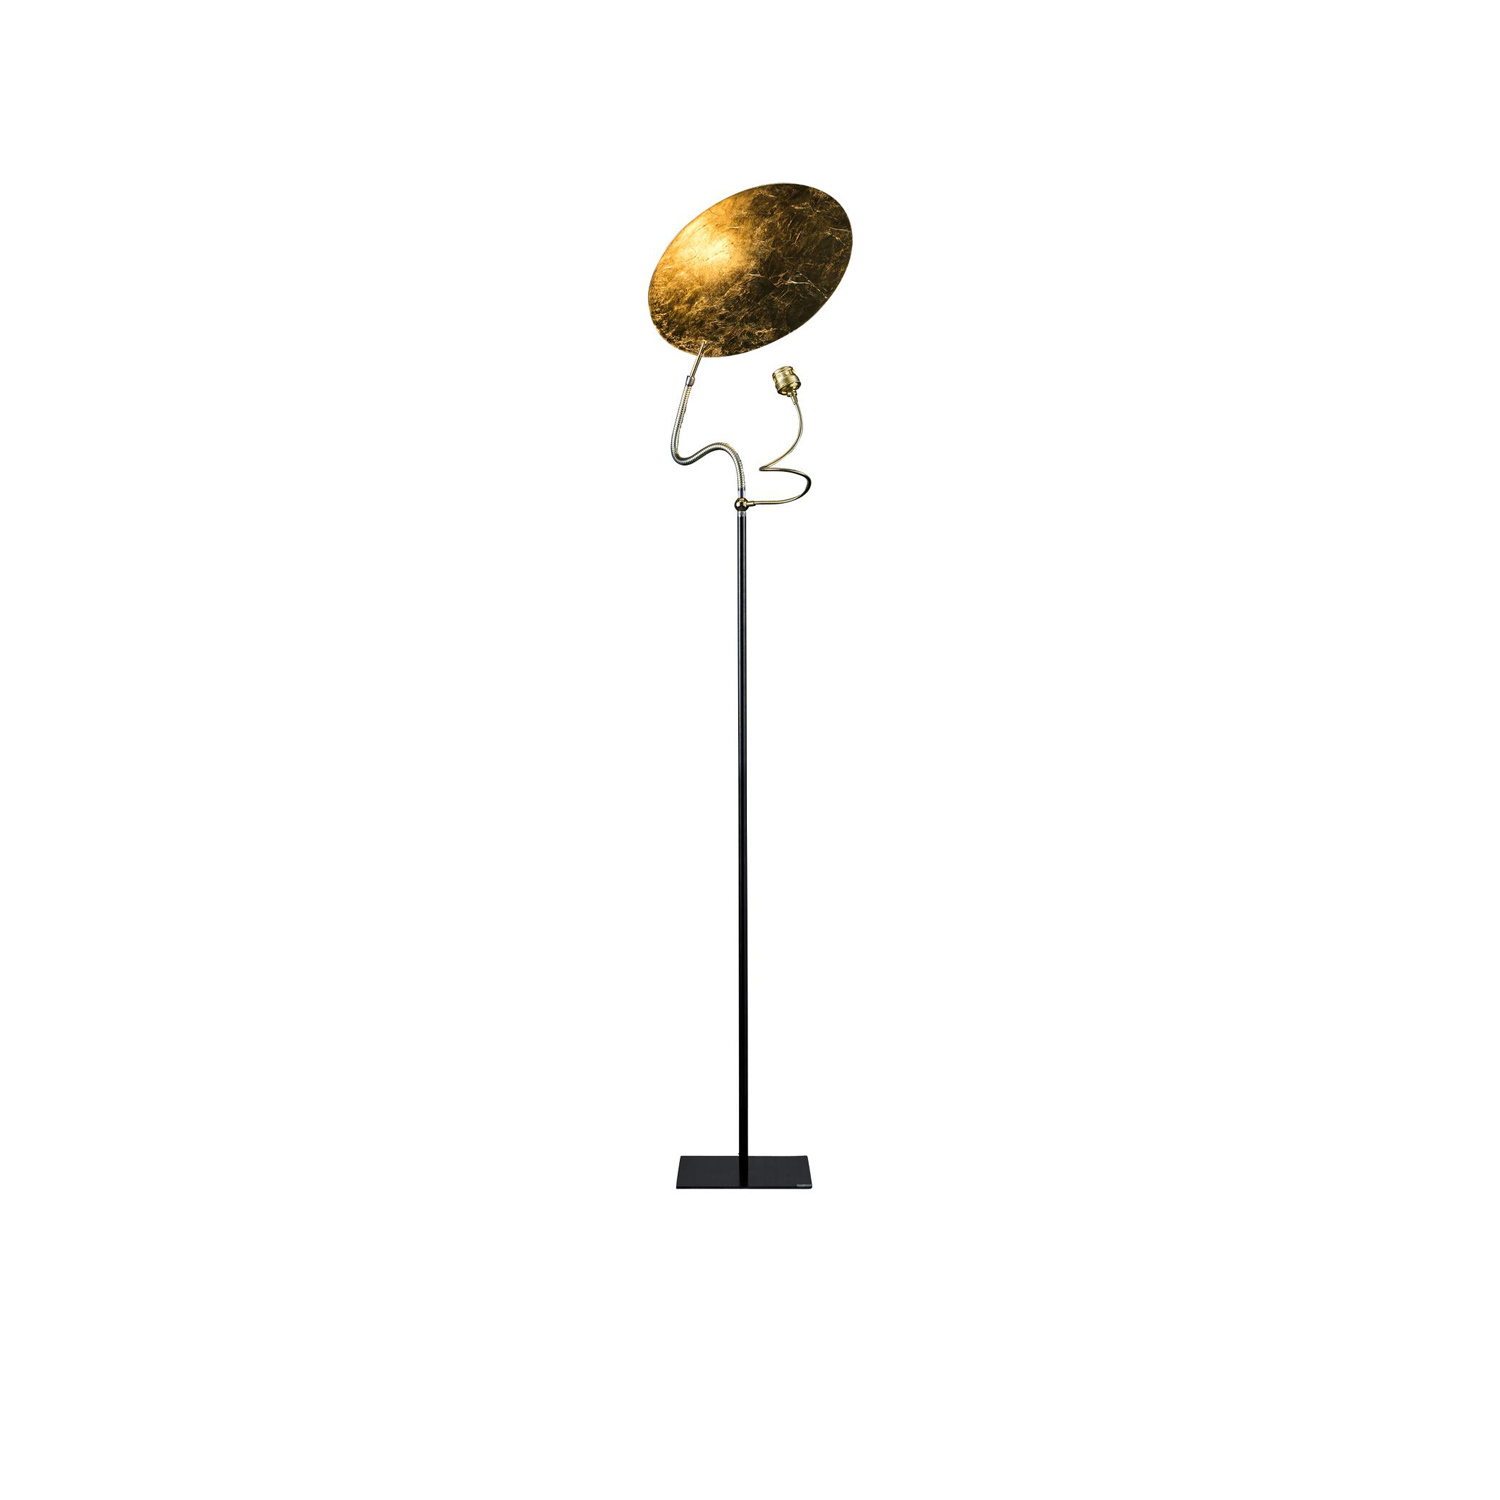 Luce d'Oro F Floor Lamp - Luci d'Oro was developed after reflecting on the colour of light: the golden light of the sun and fire; warm light, in which the concept of refraction began to take shape in Enzo Catellani's mind and which he used later in other creations. | Matter of Stuff